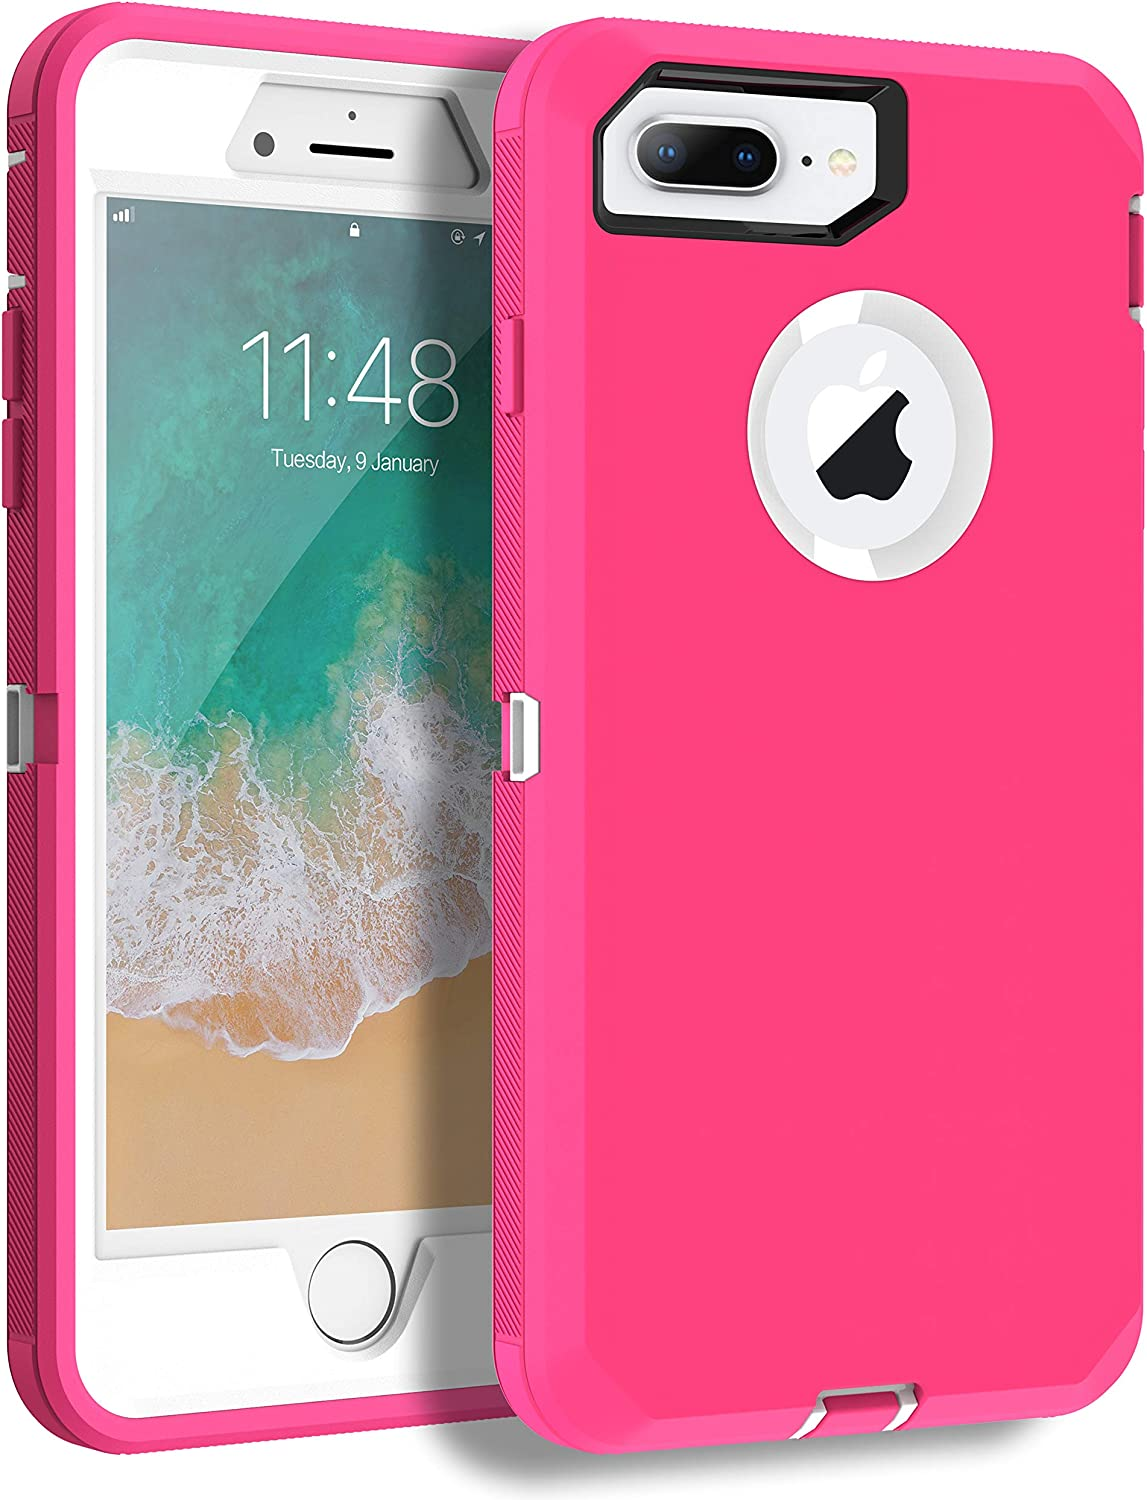 MXX iPhone 8 Plus Heavy Duty Protective Case with Screen Protector [3 Layers] Rugged Rubber Shockproof Protection Cover for Apple iPhone 7 Plus - iPhone 8 Plus/Apple Phone 8+ (Pink/White)